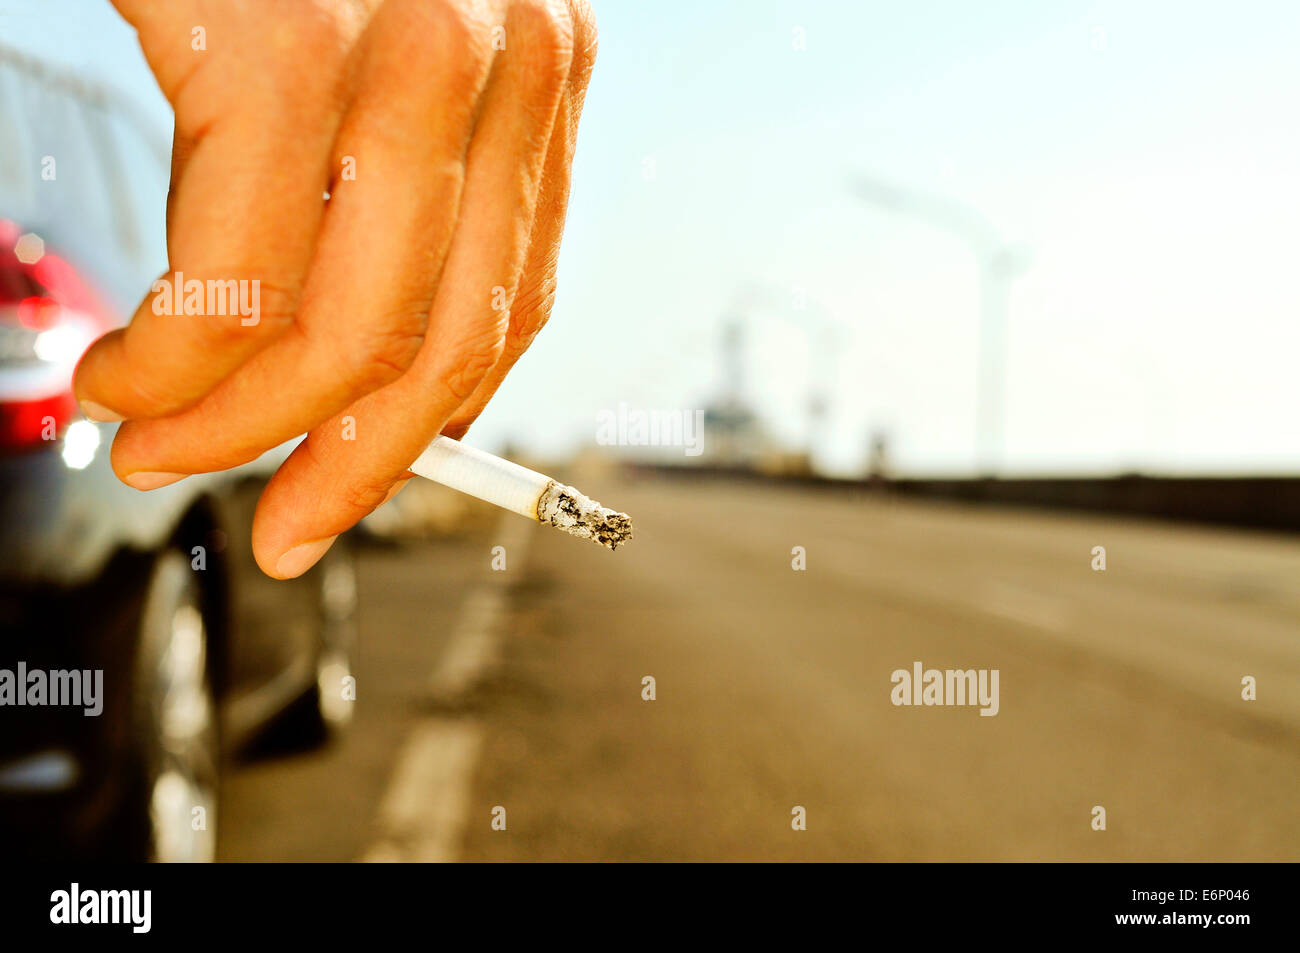 closeup of a man with a burning cigarette in his hand while is waiting besides a car parked next to a no traffic - Stock Image